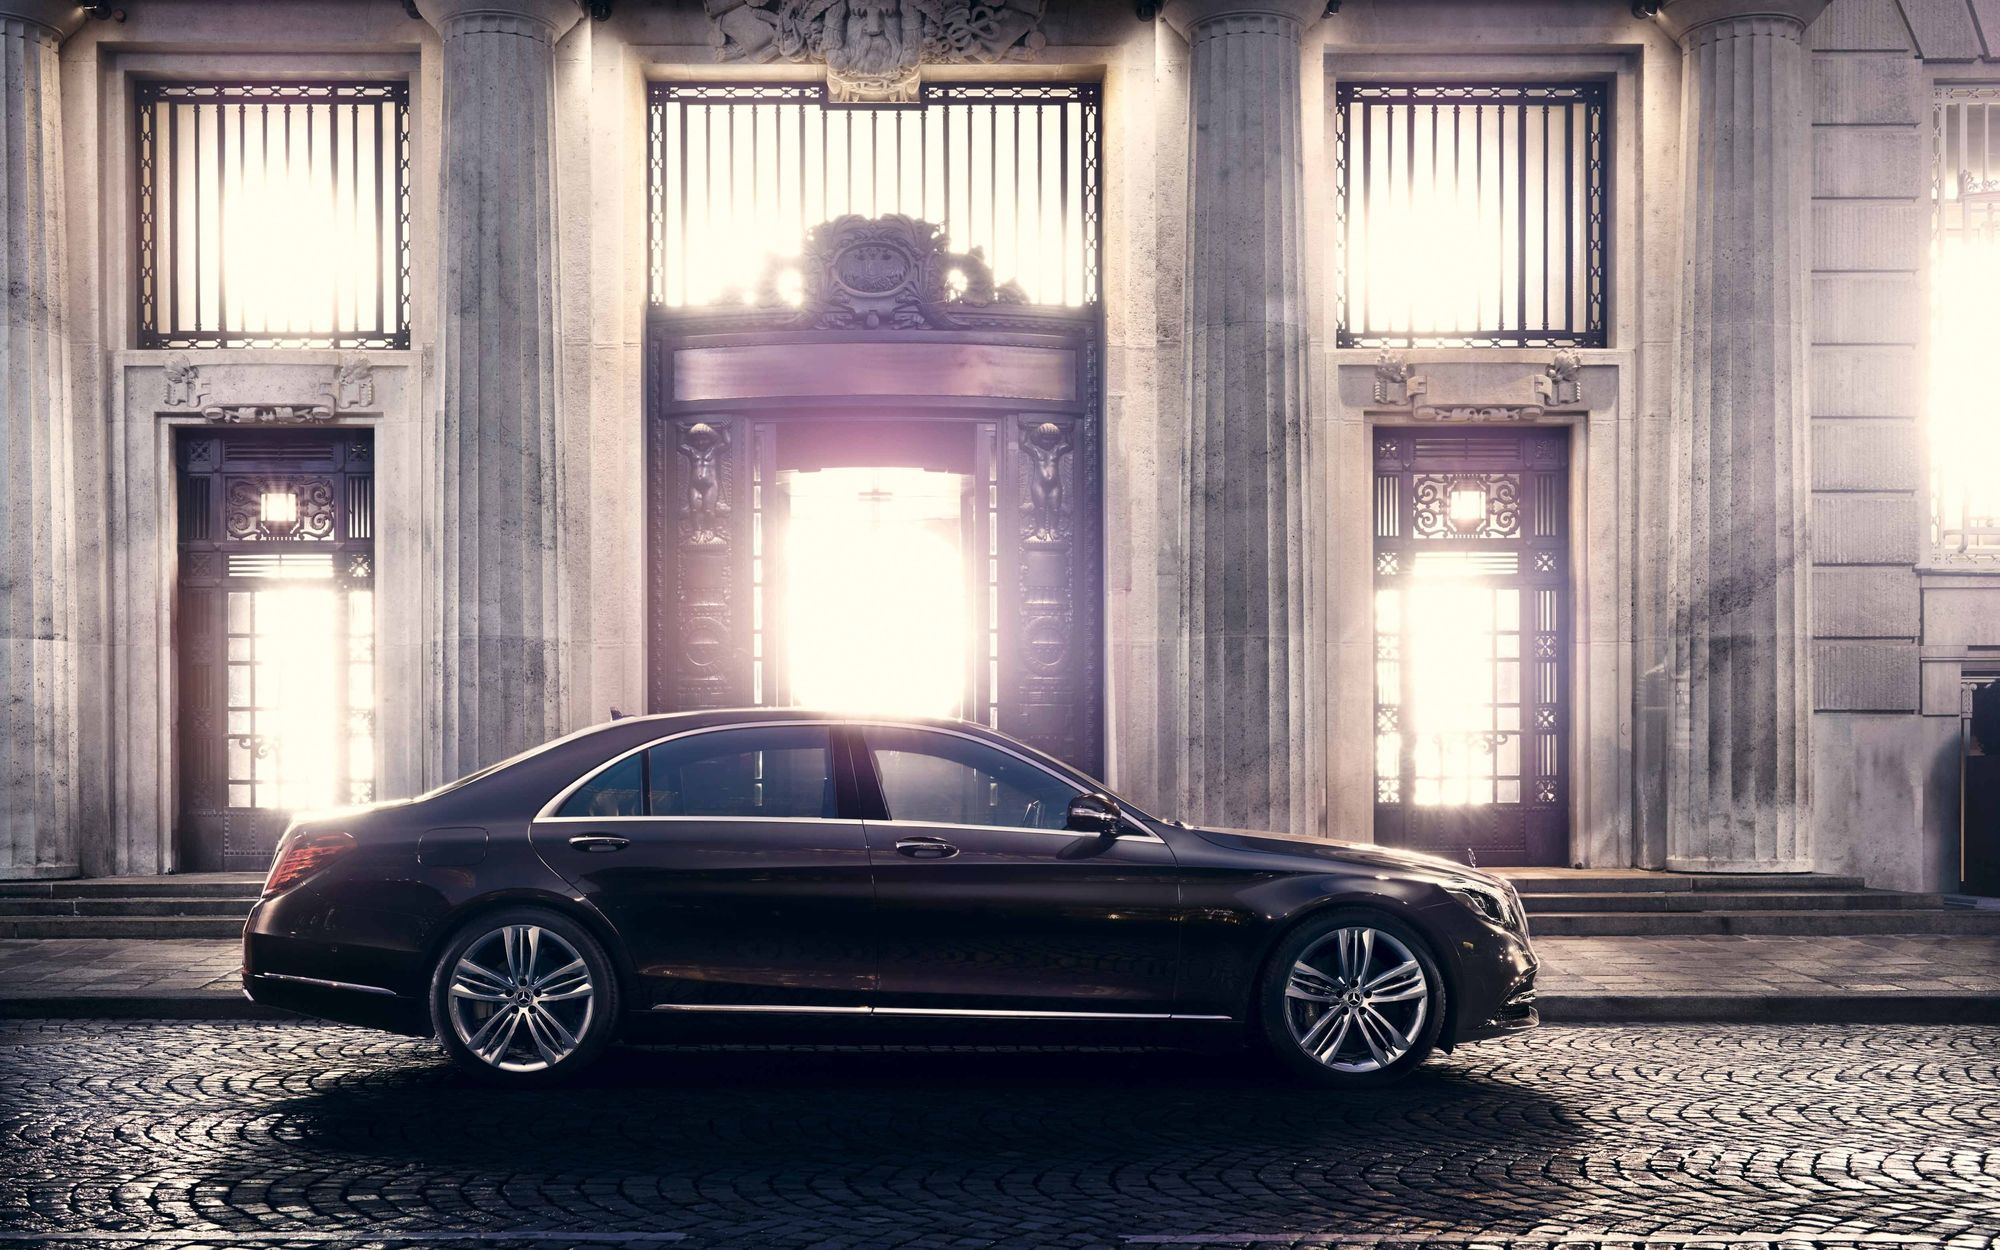 SONDA PRODUCTIONS MB S CLASS // PHOTOGRAPHER: IGOR PANITZ